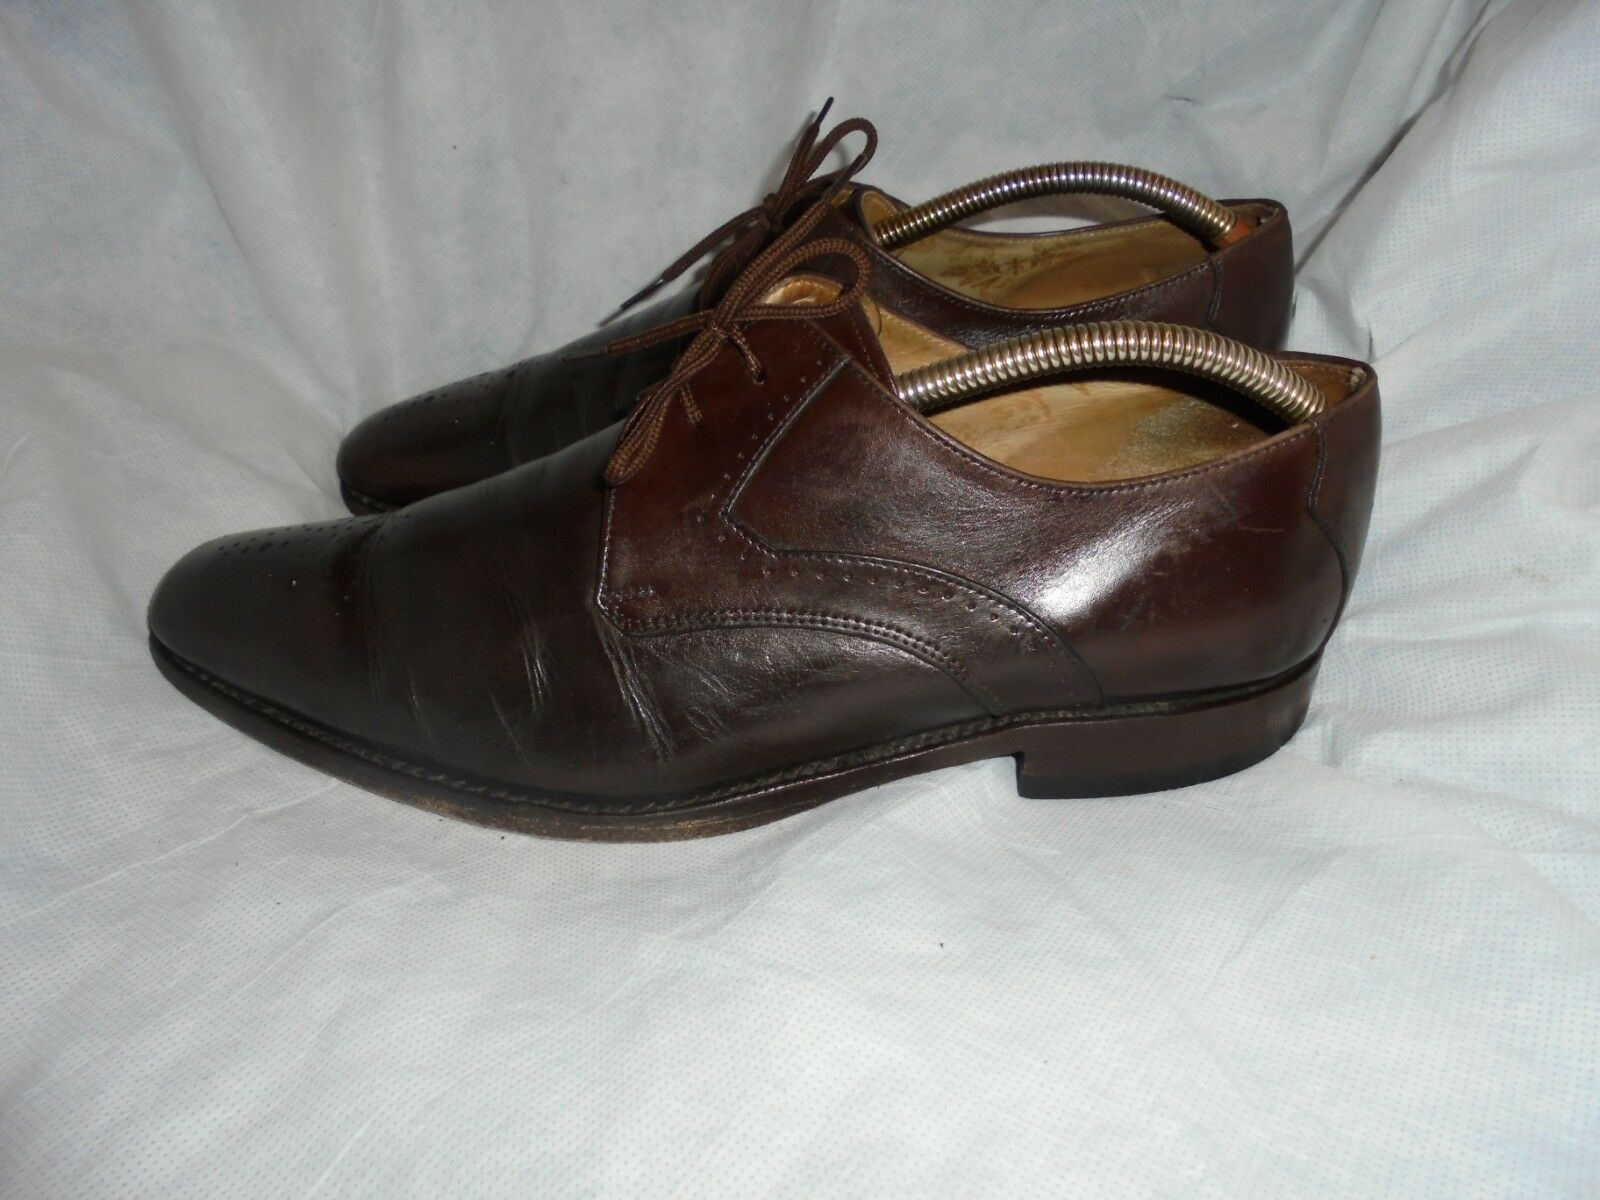 Loake LACE Schuhemakers MEN'S BROWN LEATHER LACE Loake UP BROGUES SHOE SIZE UK 9 EU 43 VGC 220d6c